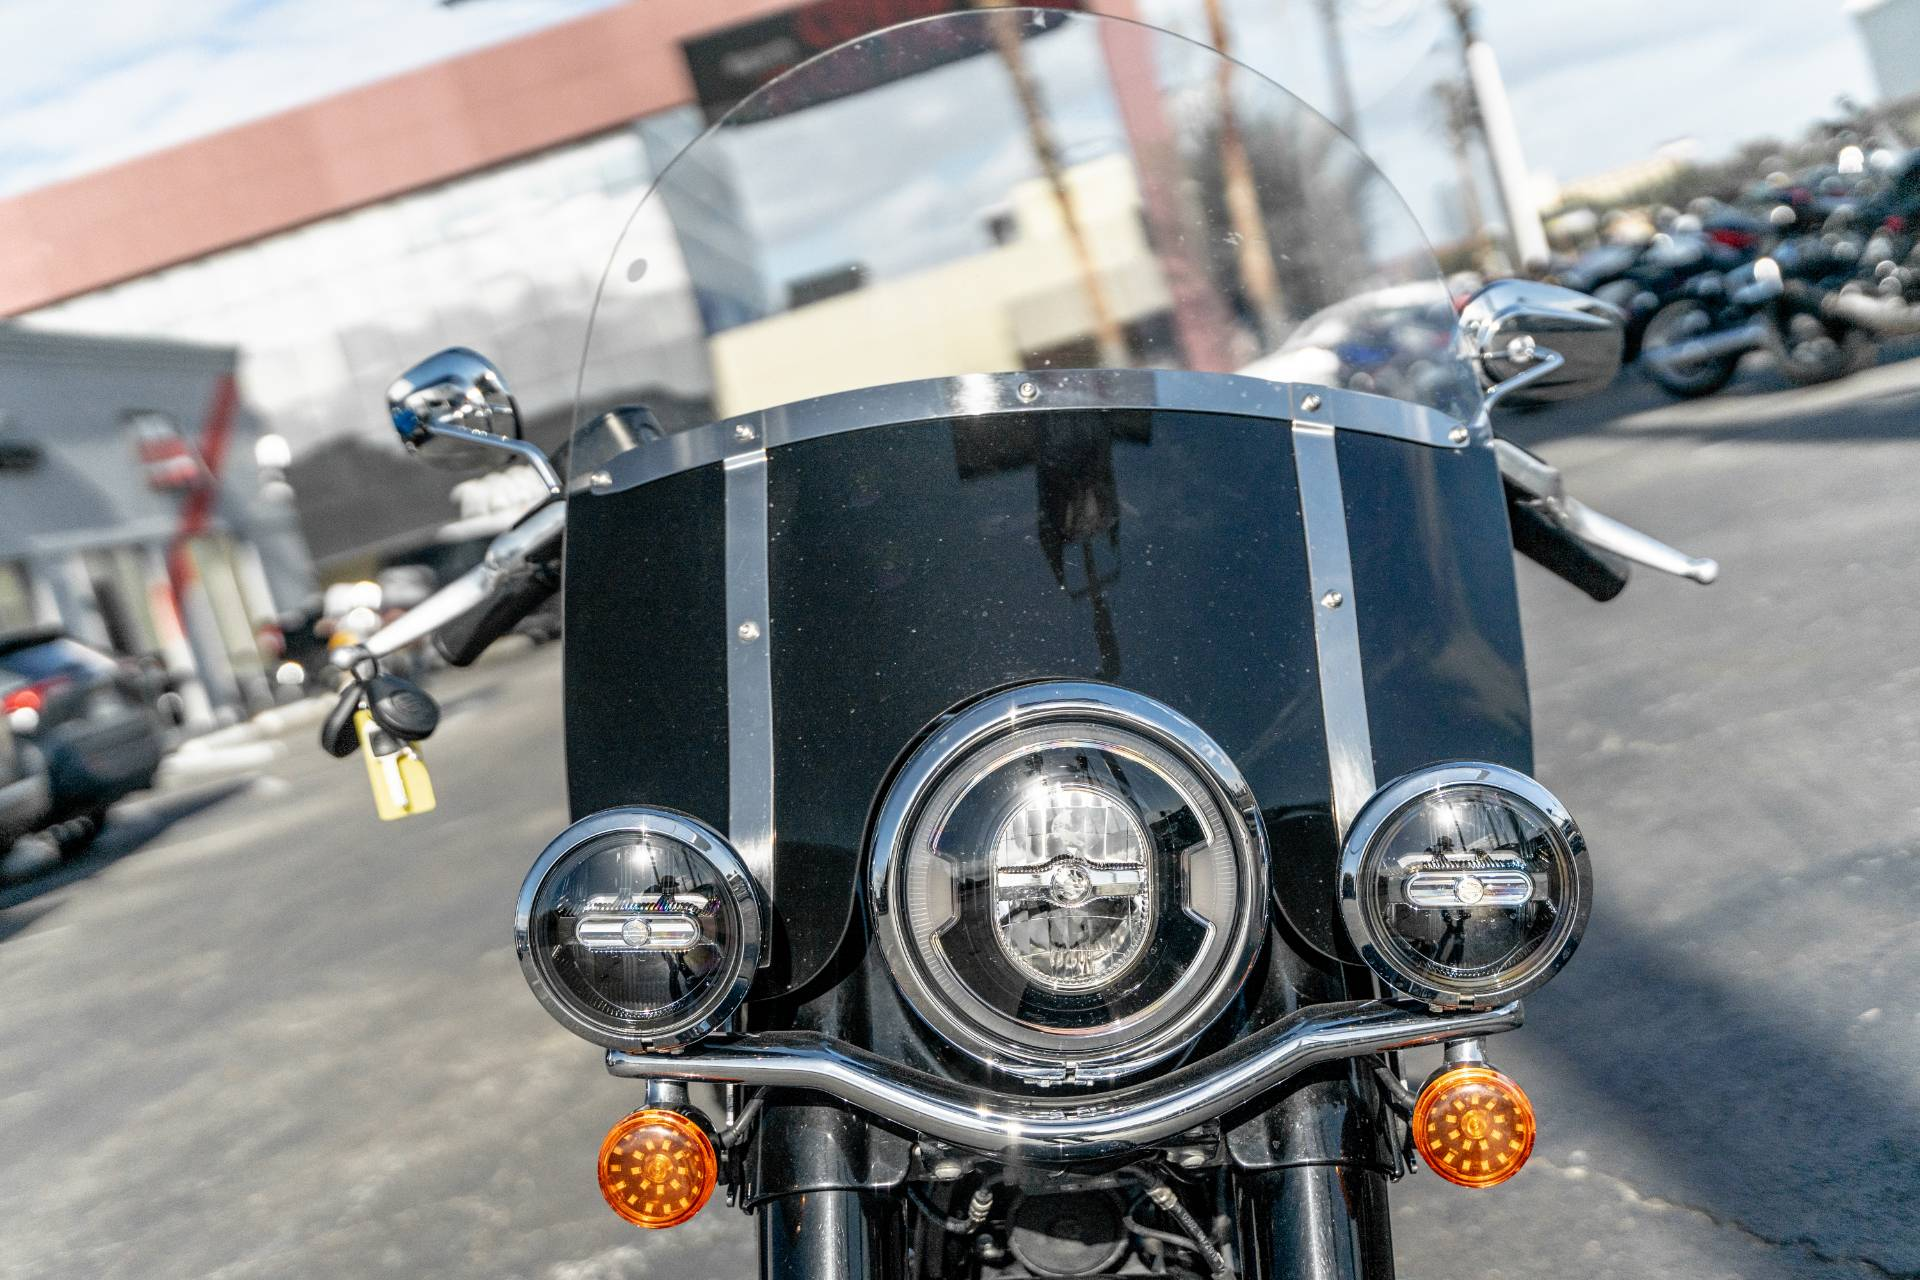 2019 Harley-Davidson Heritage Classic 114 in Houston, Texas - Photo 14